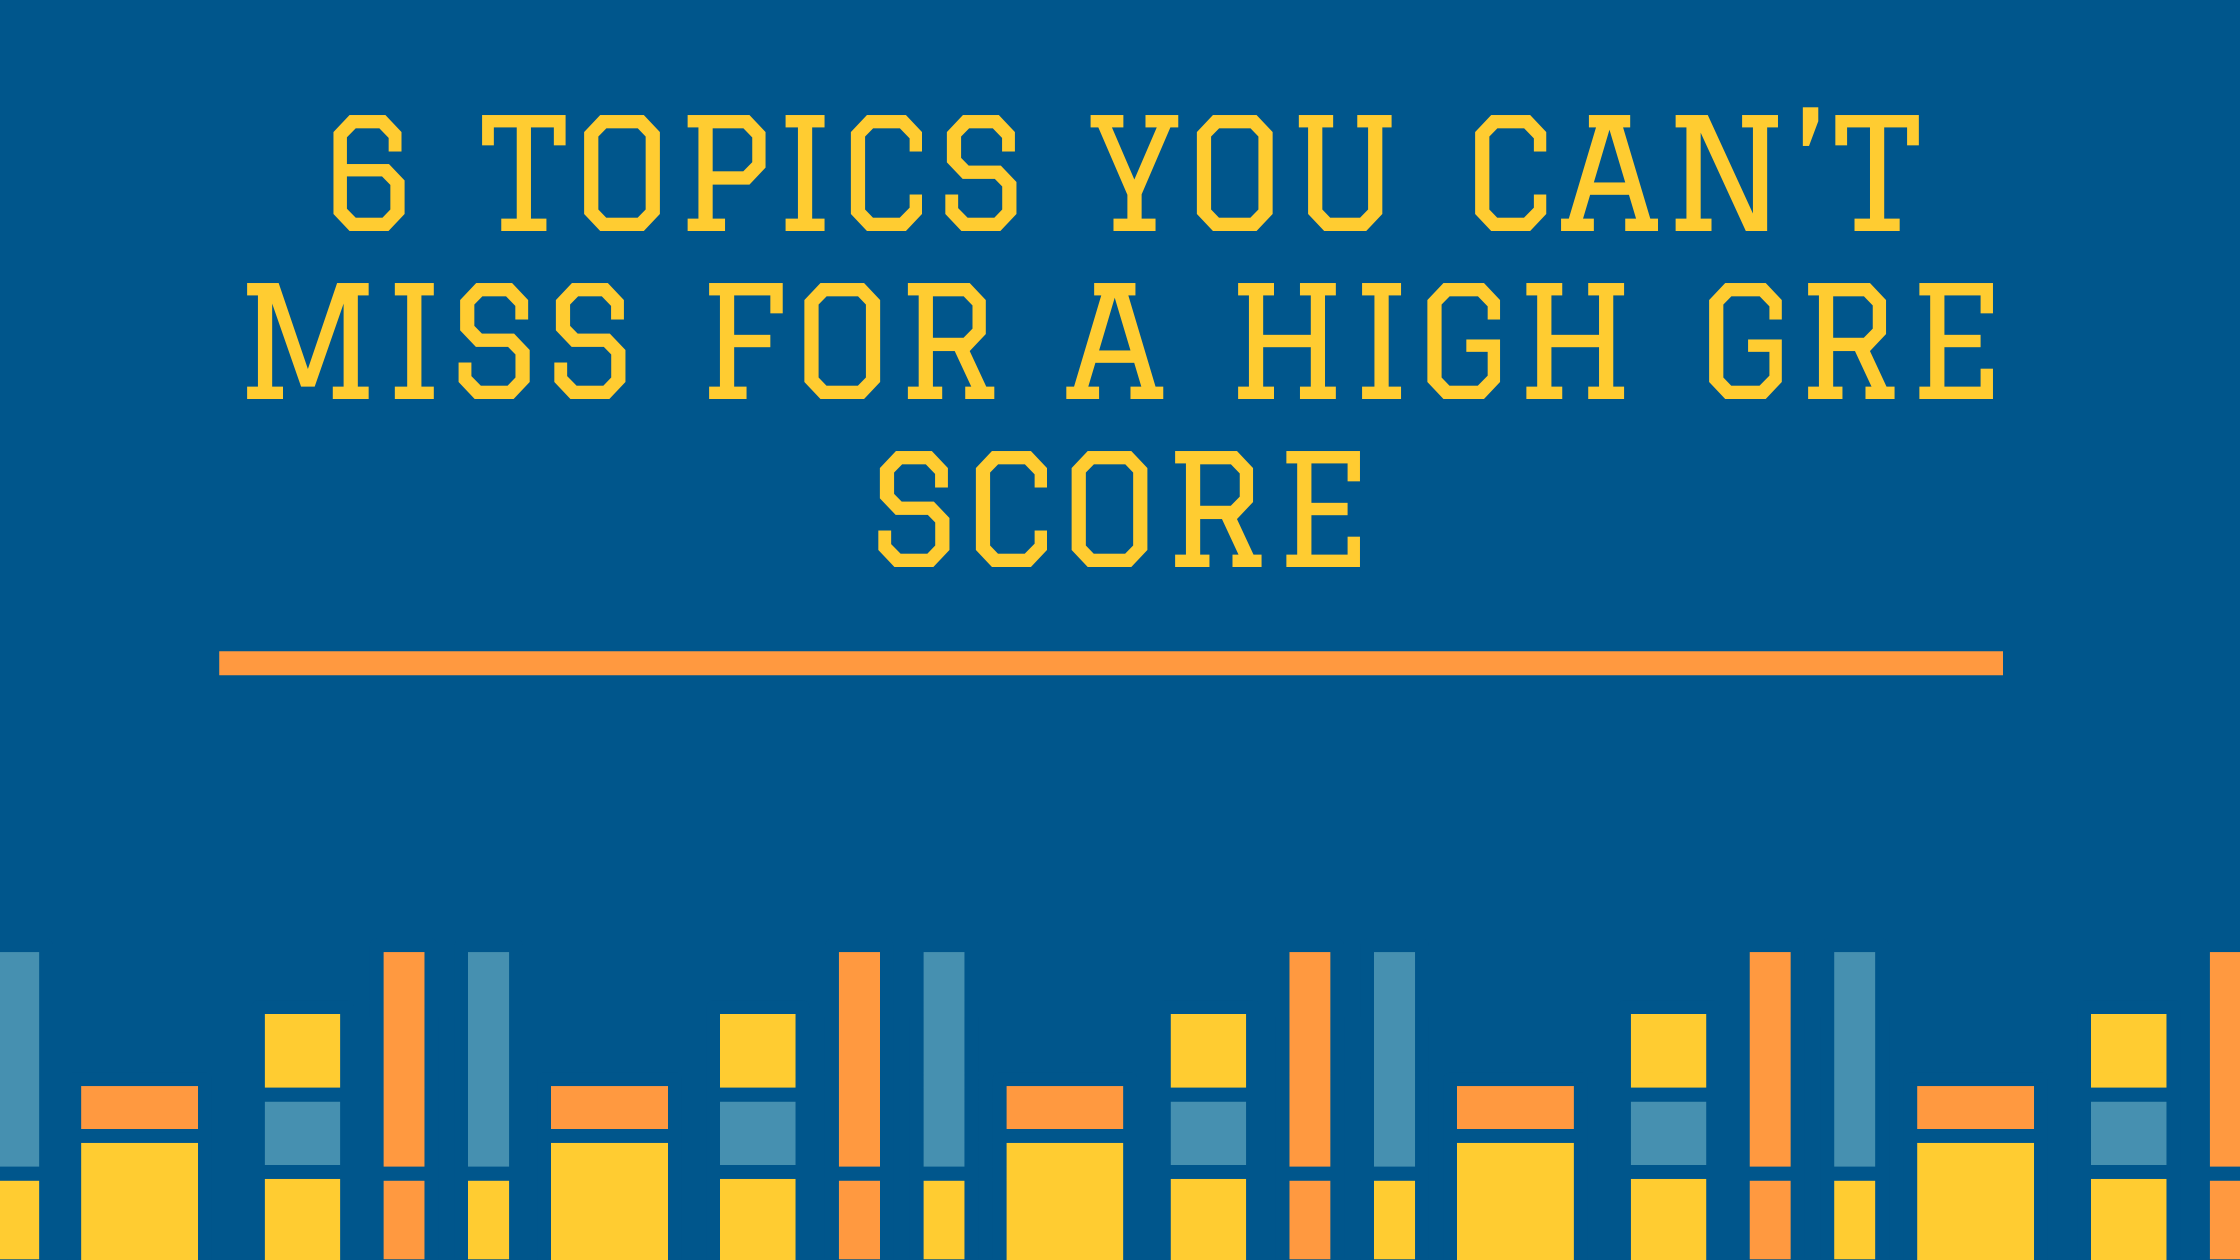 6 topics you CAN'T miss for a High GRE Score